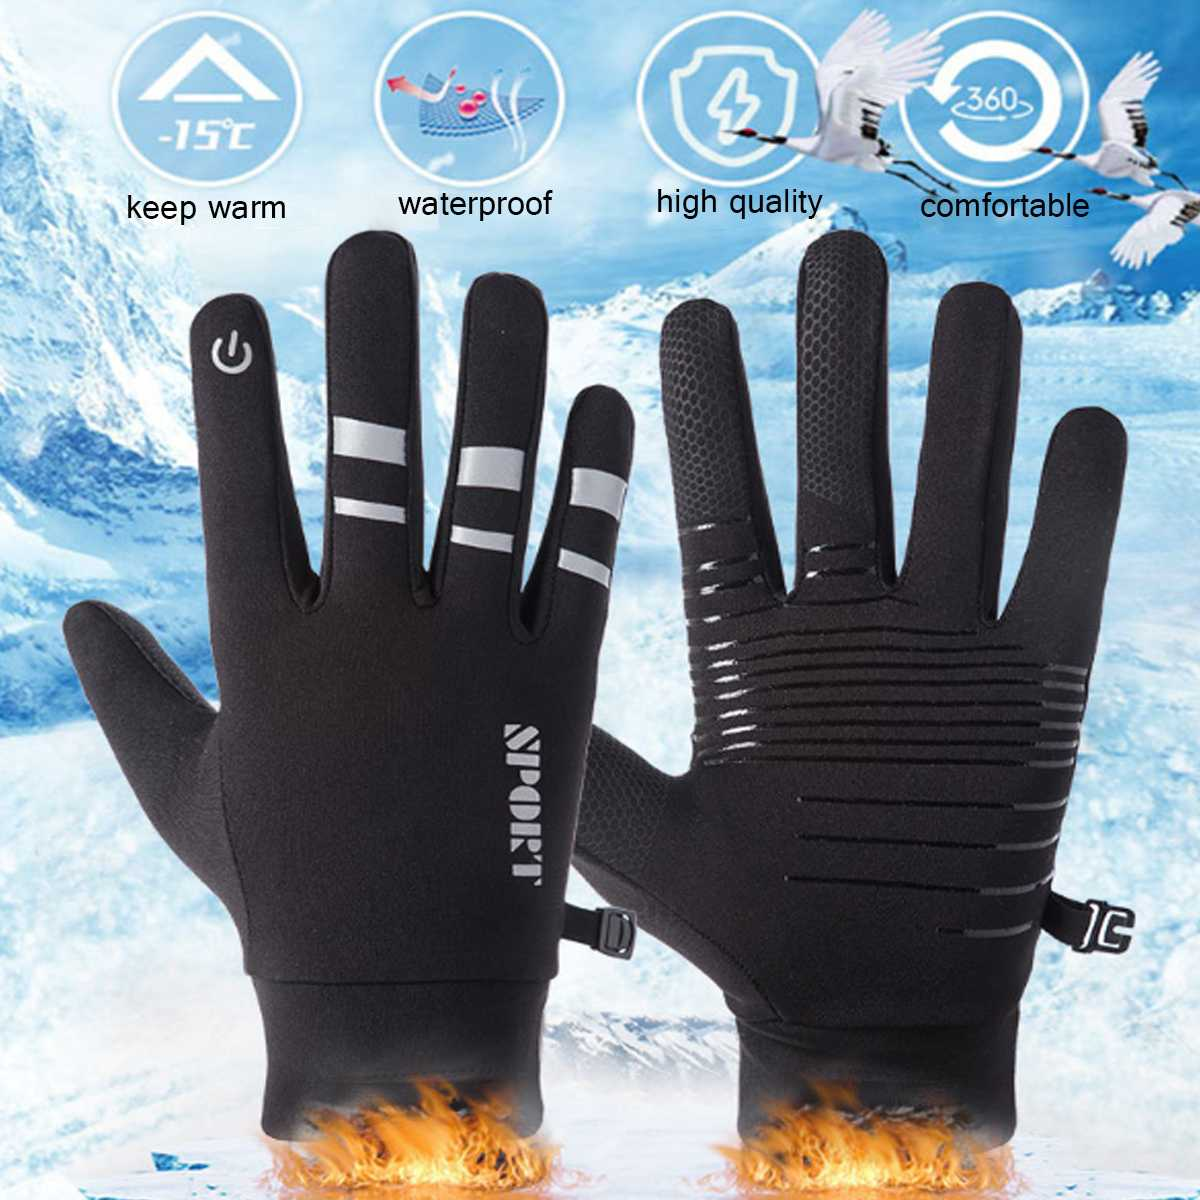 Winter Thermal Ski Gloves Men Women Fleece Touch Screen Snowboard Gloves Outdoor Waterproof Snow Motorcycle Skiing Gloves